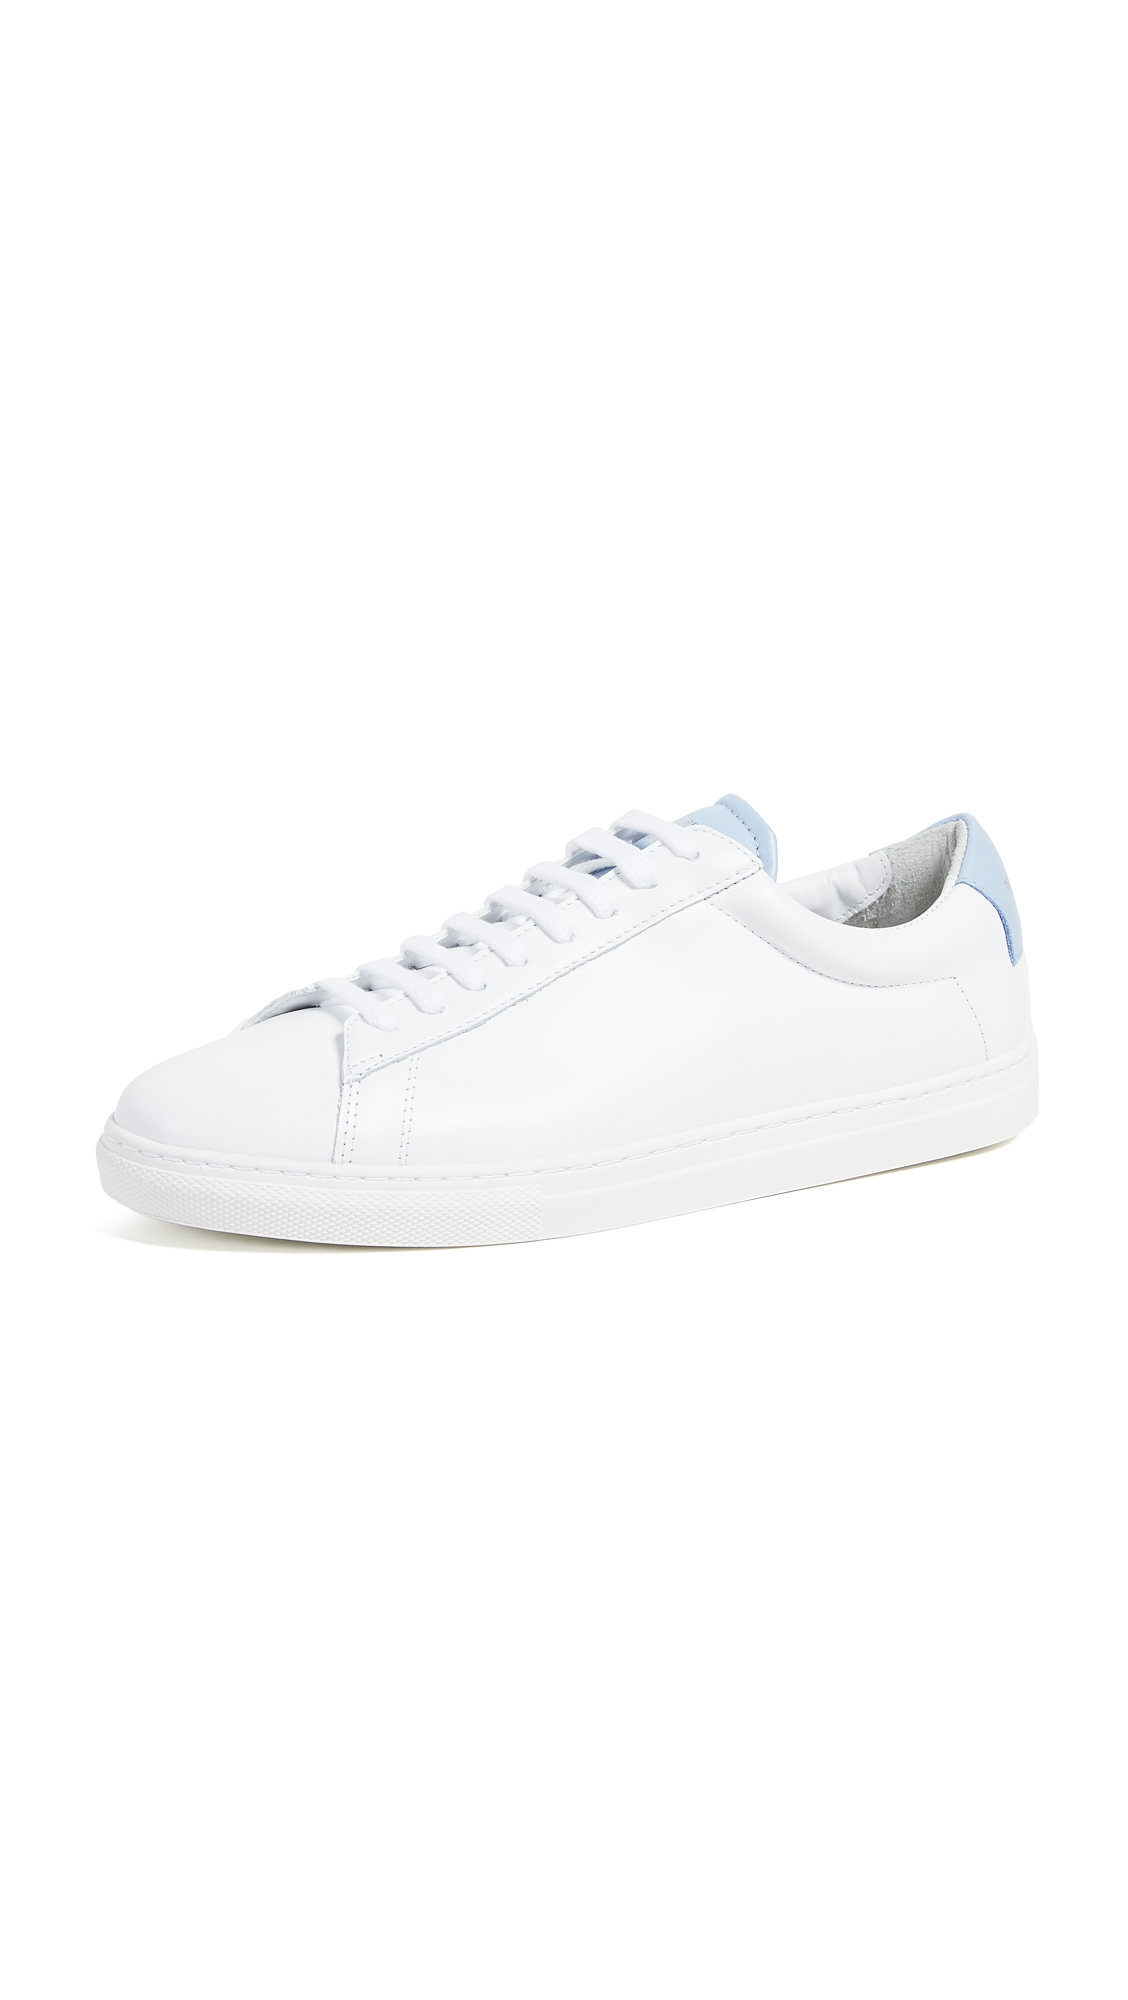 Zespà ZSP4 LOW TOP SNEAKERS